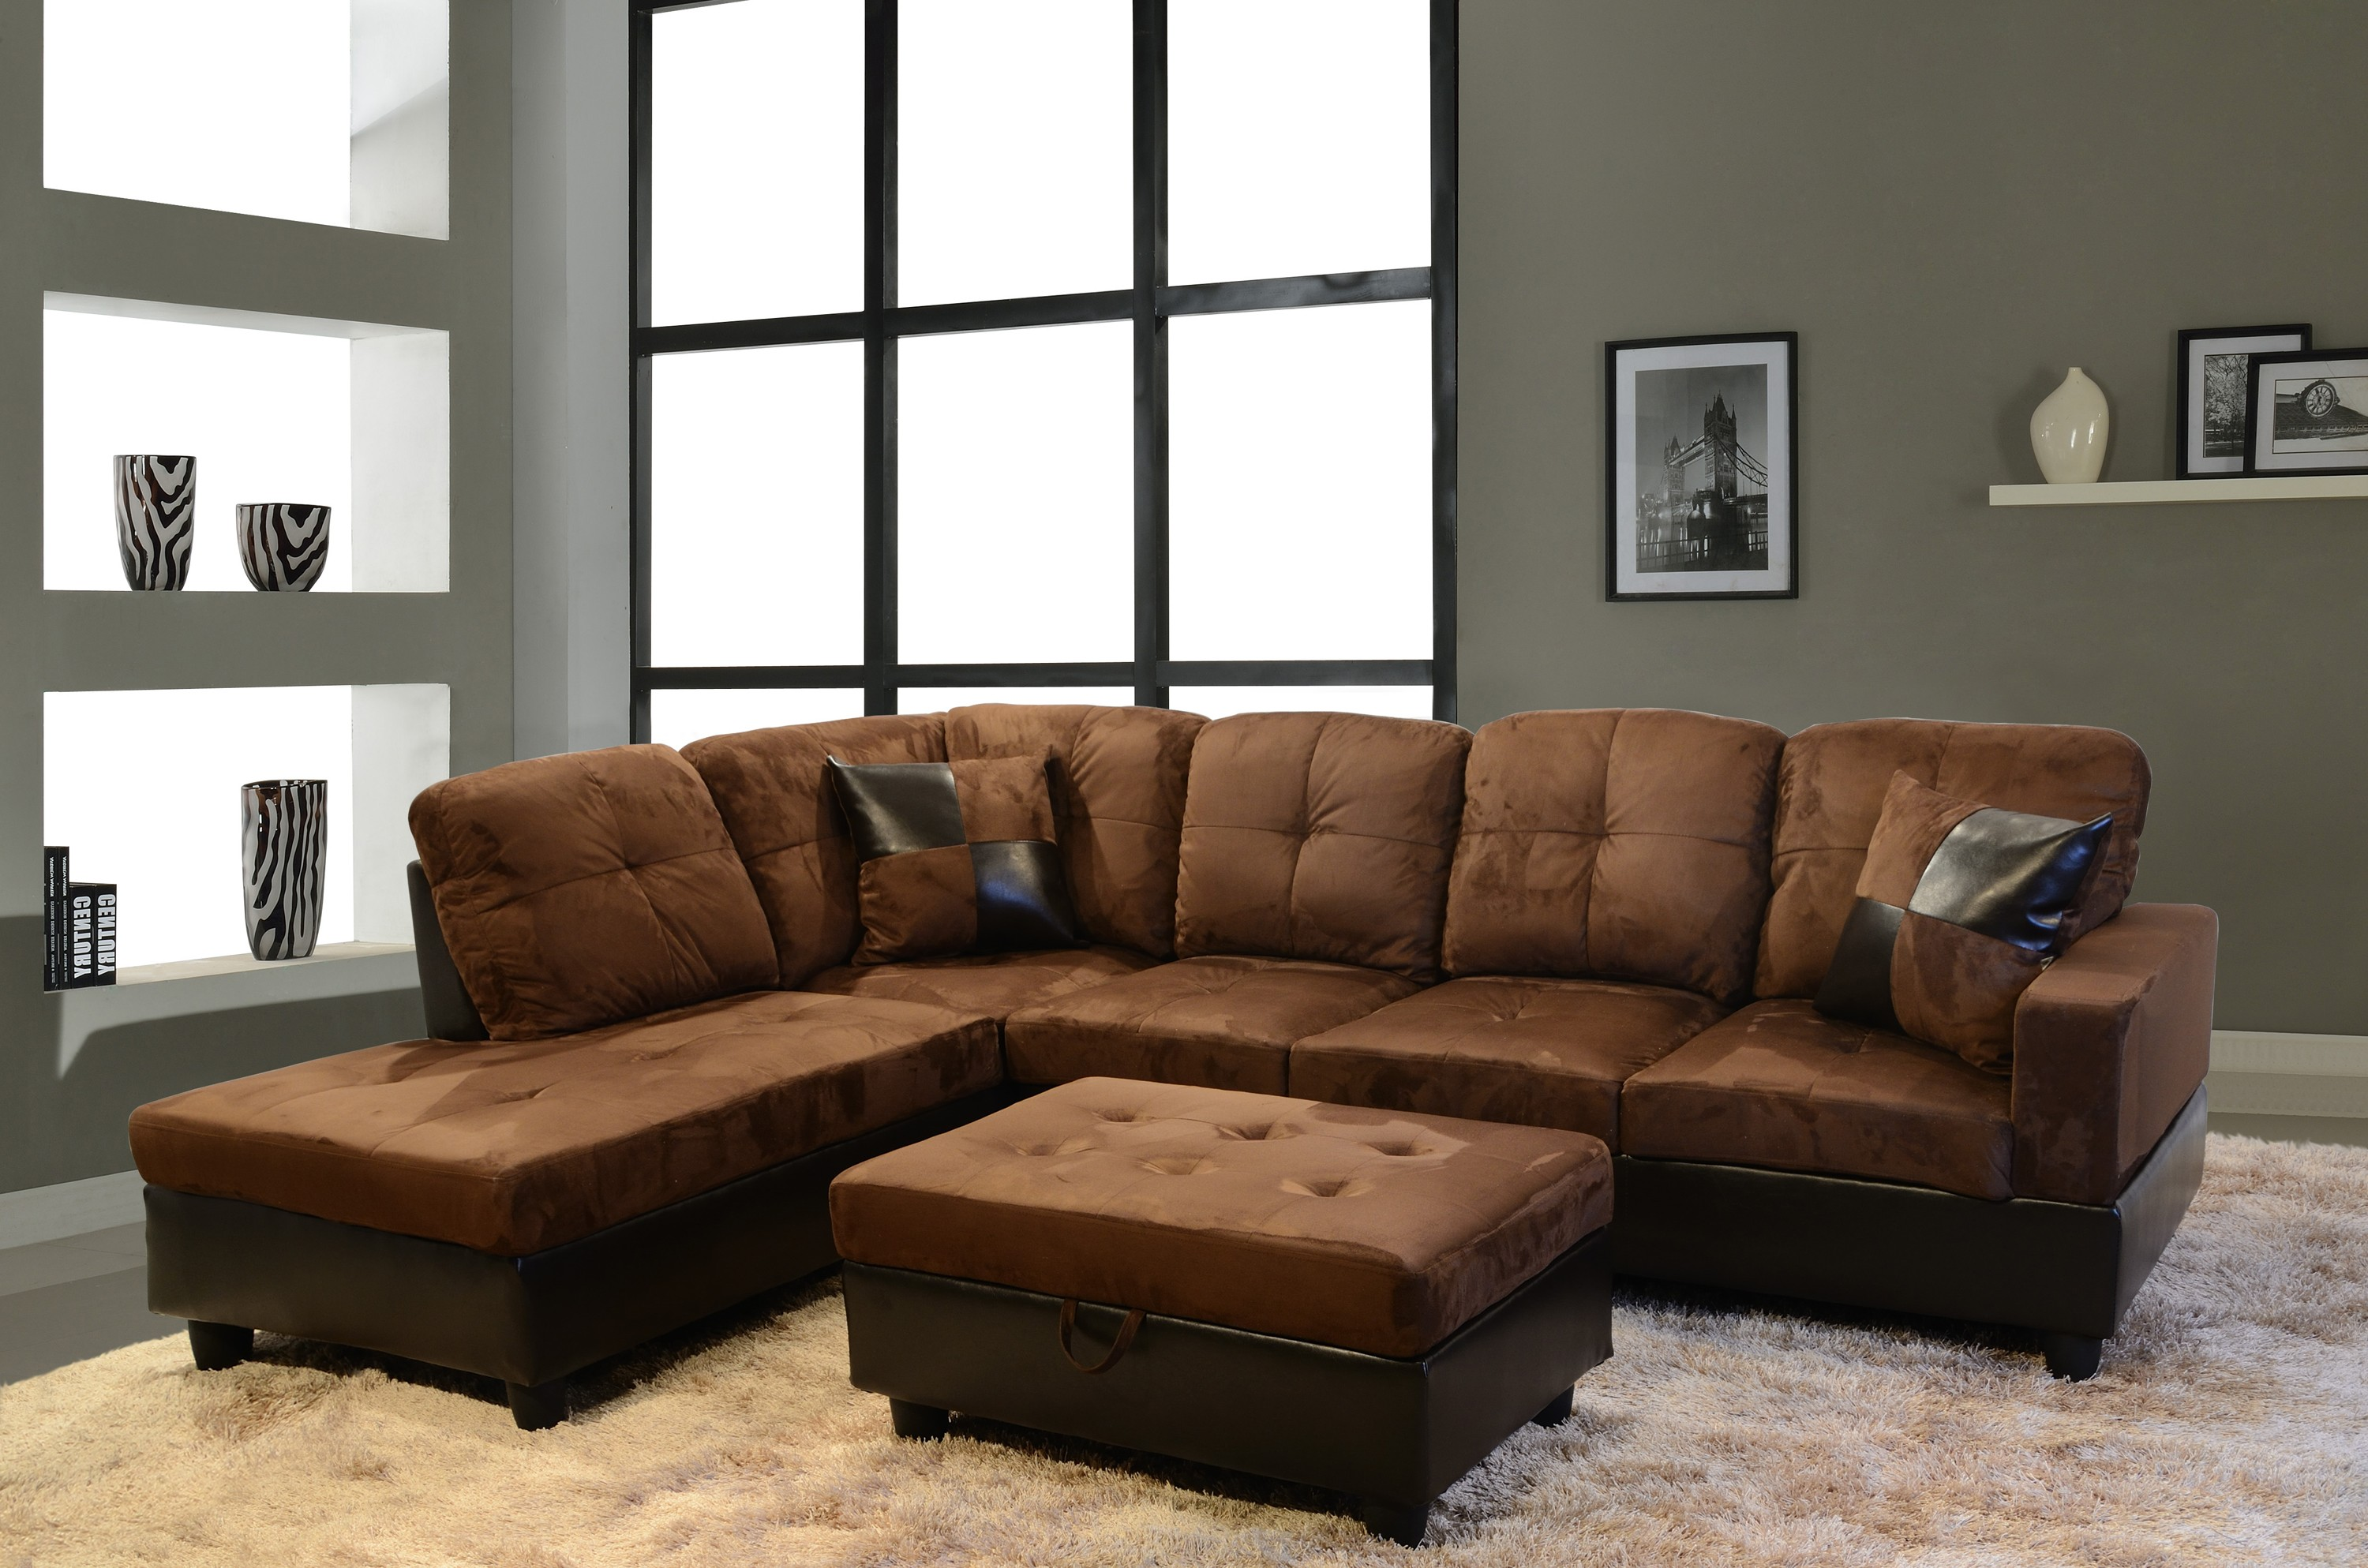 Gorgeous sectional couches for sale with cushions and wooden legs for home furniture ideas with cheap sectional couches for sale